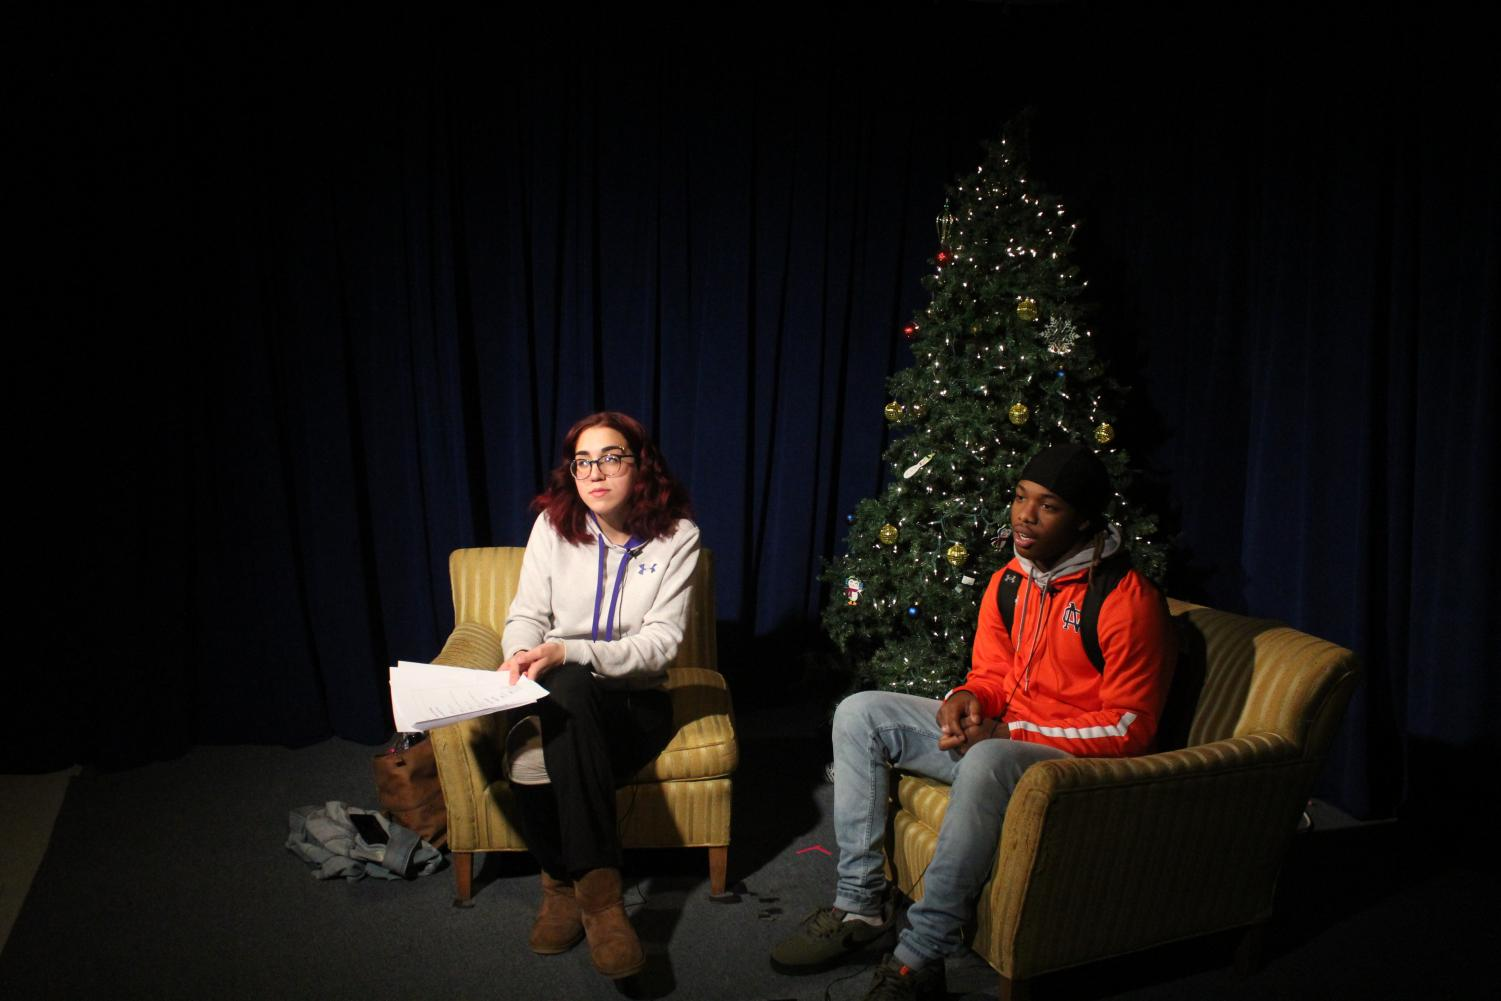 Cassia Dunlap and Gerald Harris receive instruction as they prepare to film a show similar to Tomahawk Today. Those enrolled in the Audio-Video Technology and Film pathway learn to produce more than the regular news package shown first thing in Homeroom; they also learn scripting, writing, filming, and editing for creative projects such as the one shown.